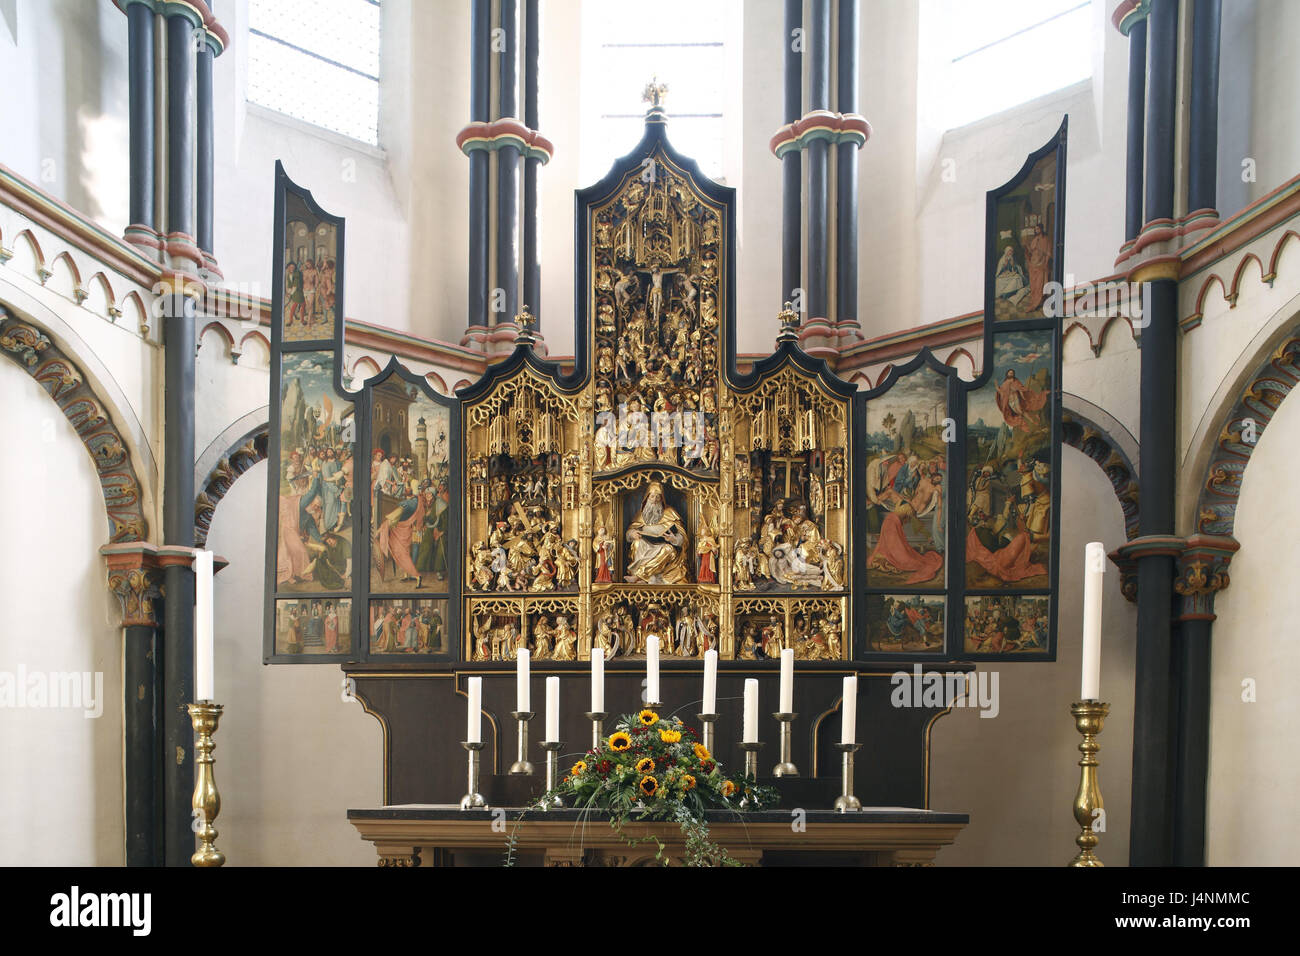 Germany, Rhineland-Palatinate, cathedral May field, church, interior view, altar, May field, Eifel, Rhineland, the - Stock Image